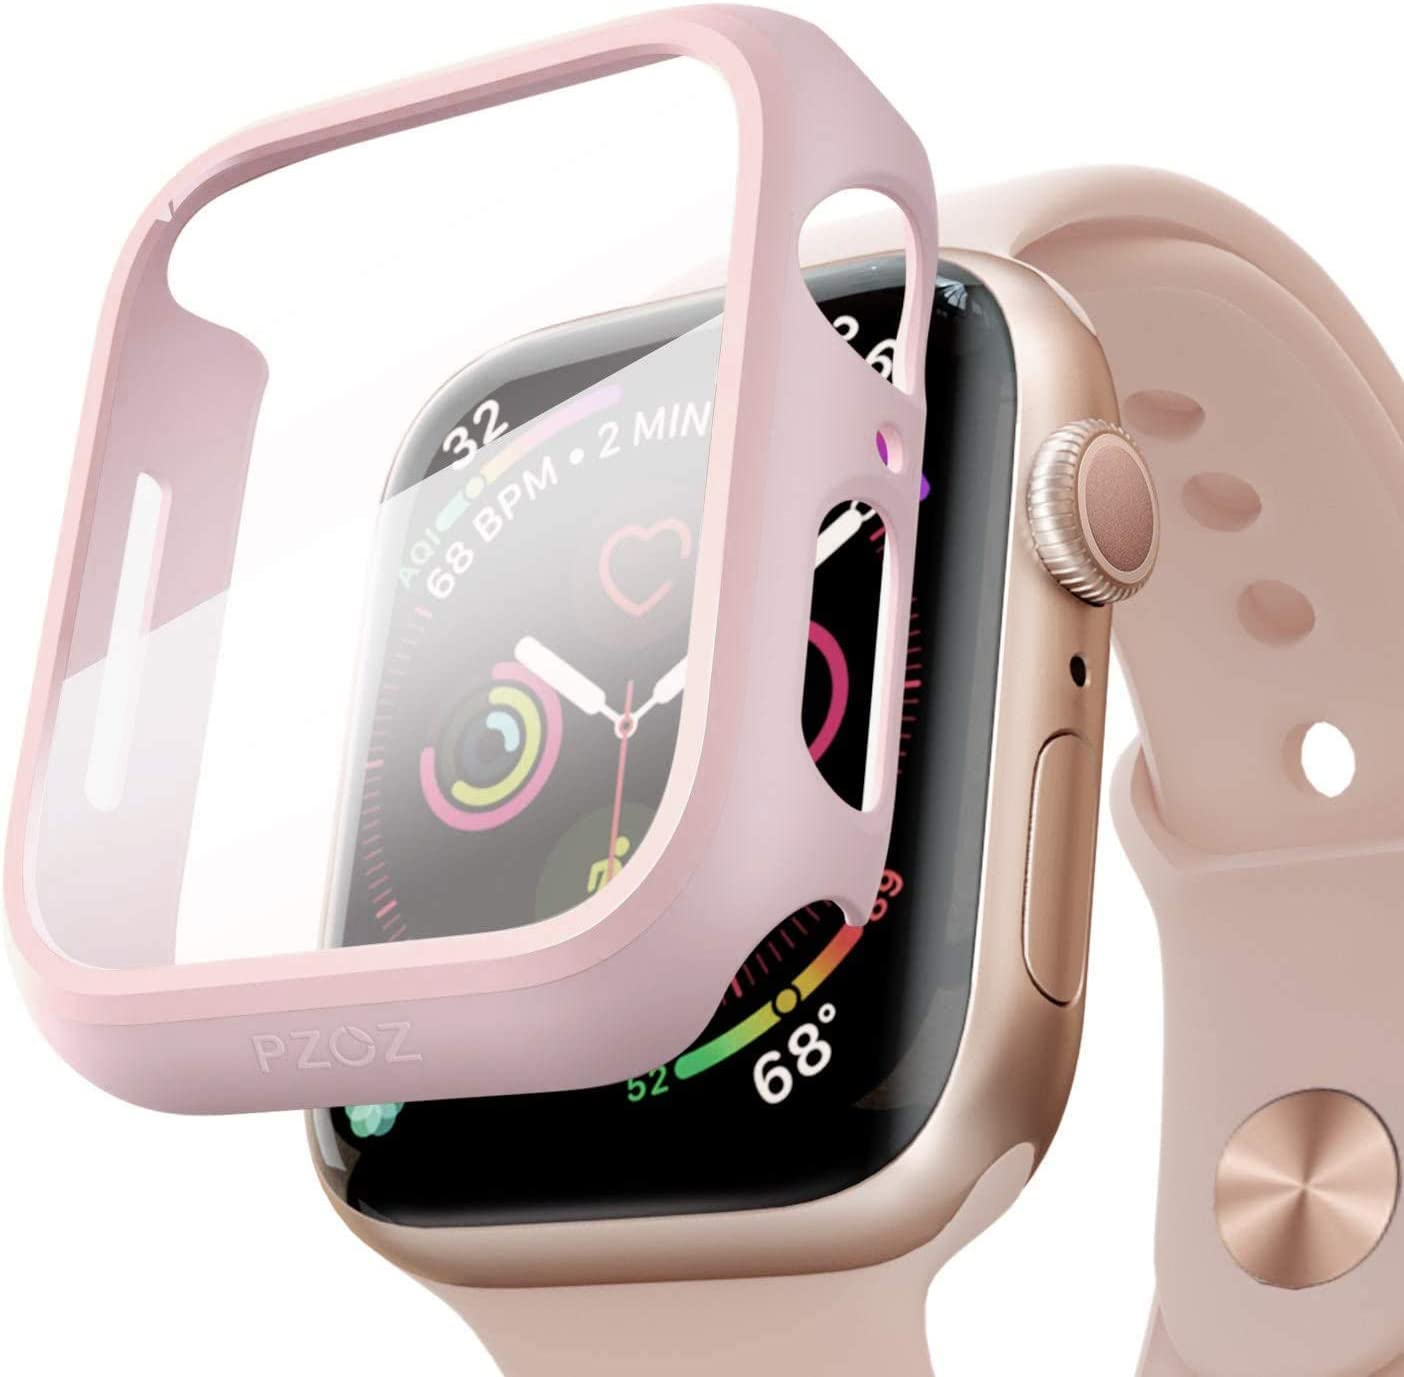 pzoz Compatible Apple Watch Series 6/5 /4 /SE 44mm Case with Screen Protector Accessories Slim Guard Thin Bumper Full Coverage Matte Hard Cover Defense Edge for Women Men New Gen GPS iWatch (Pink)